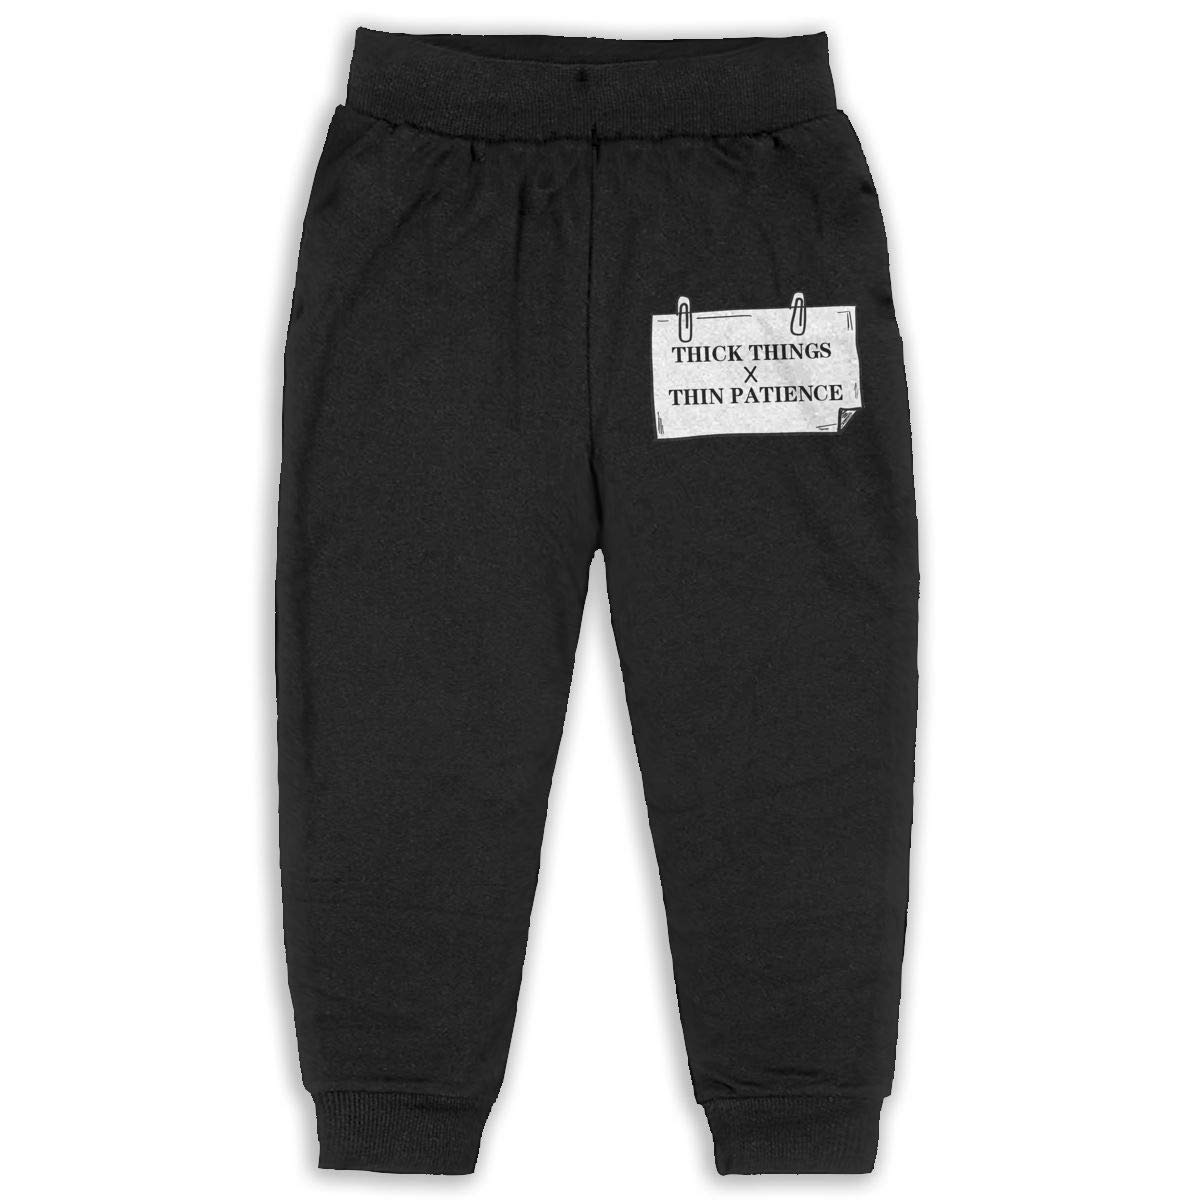 Roli-Land Unisex Boys Thick Thighs Thin Patience Fashion Sleep Sweatpants Black Gift with Pockets Pajamas